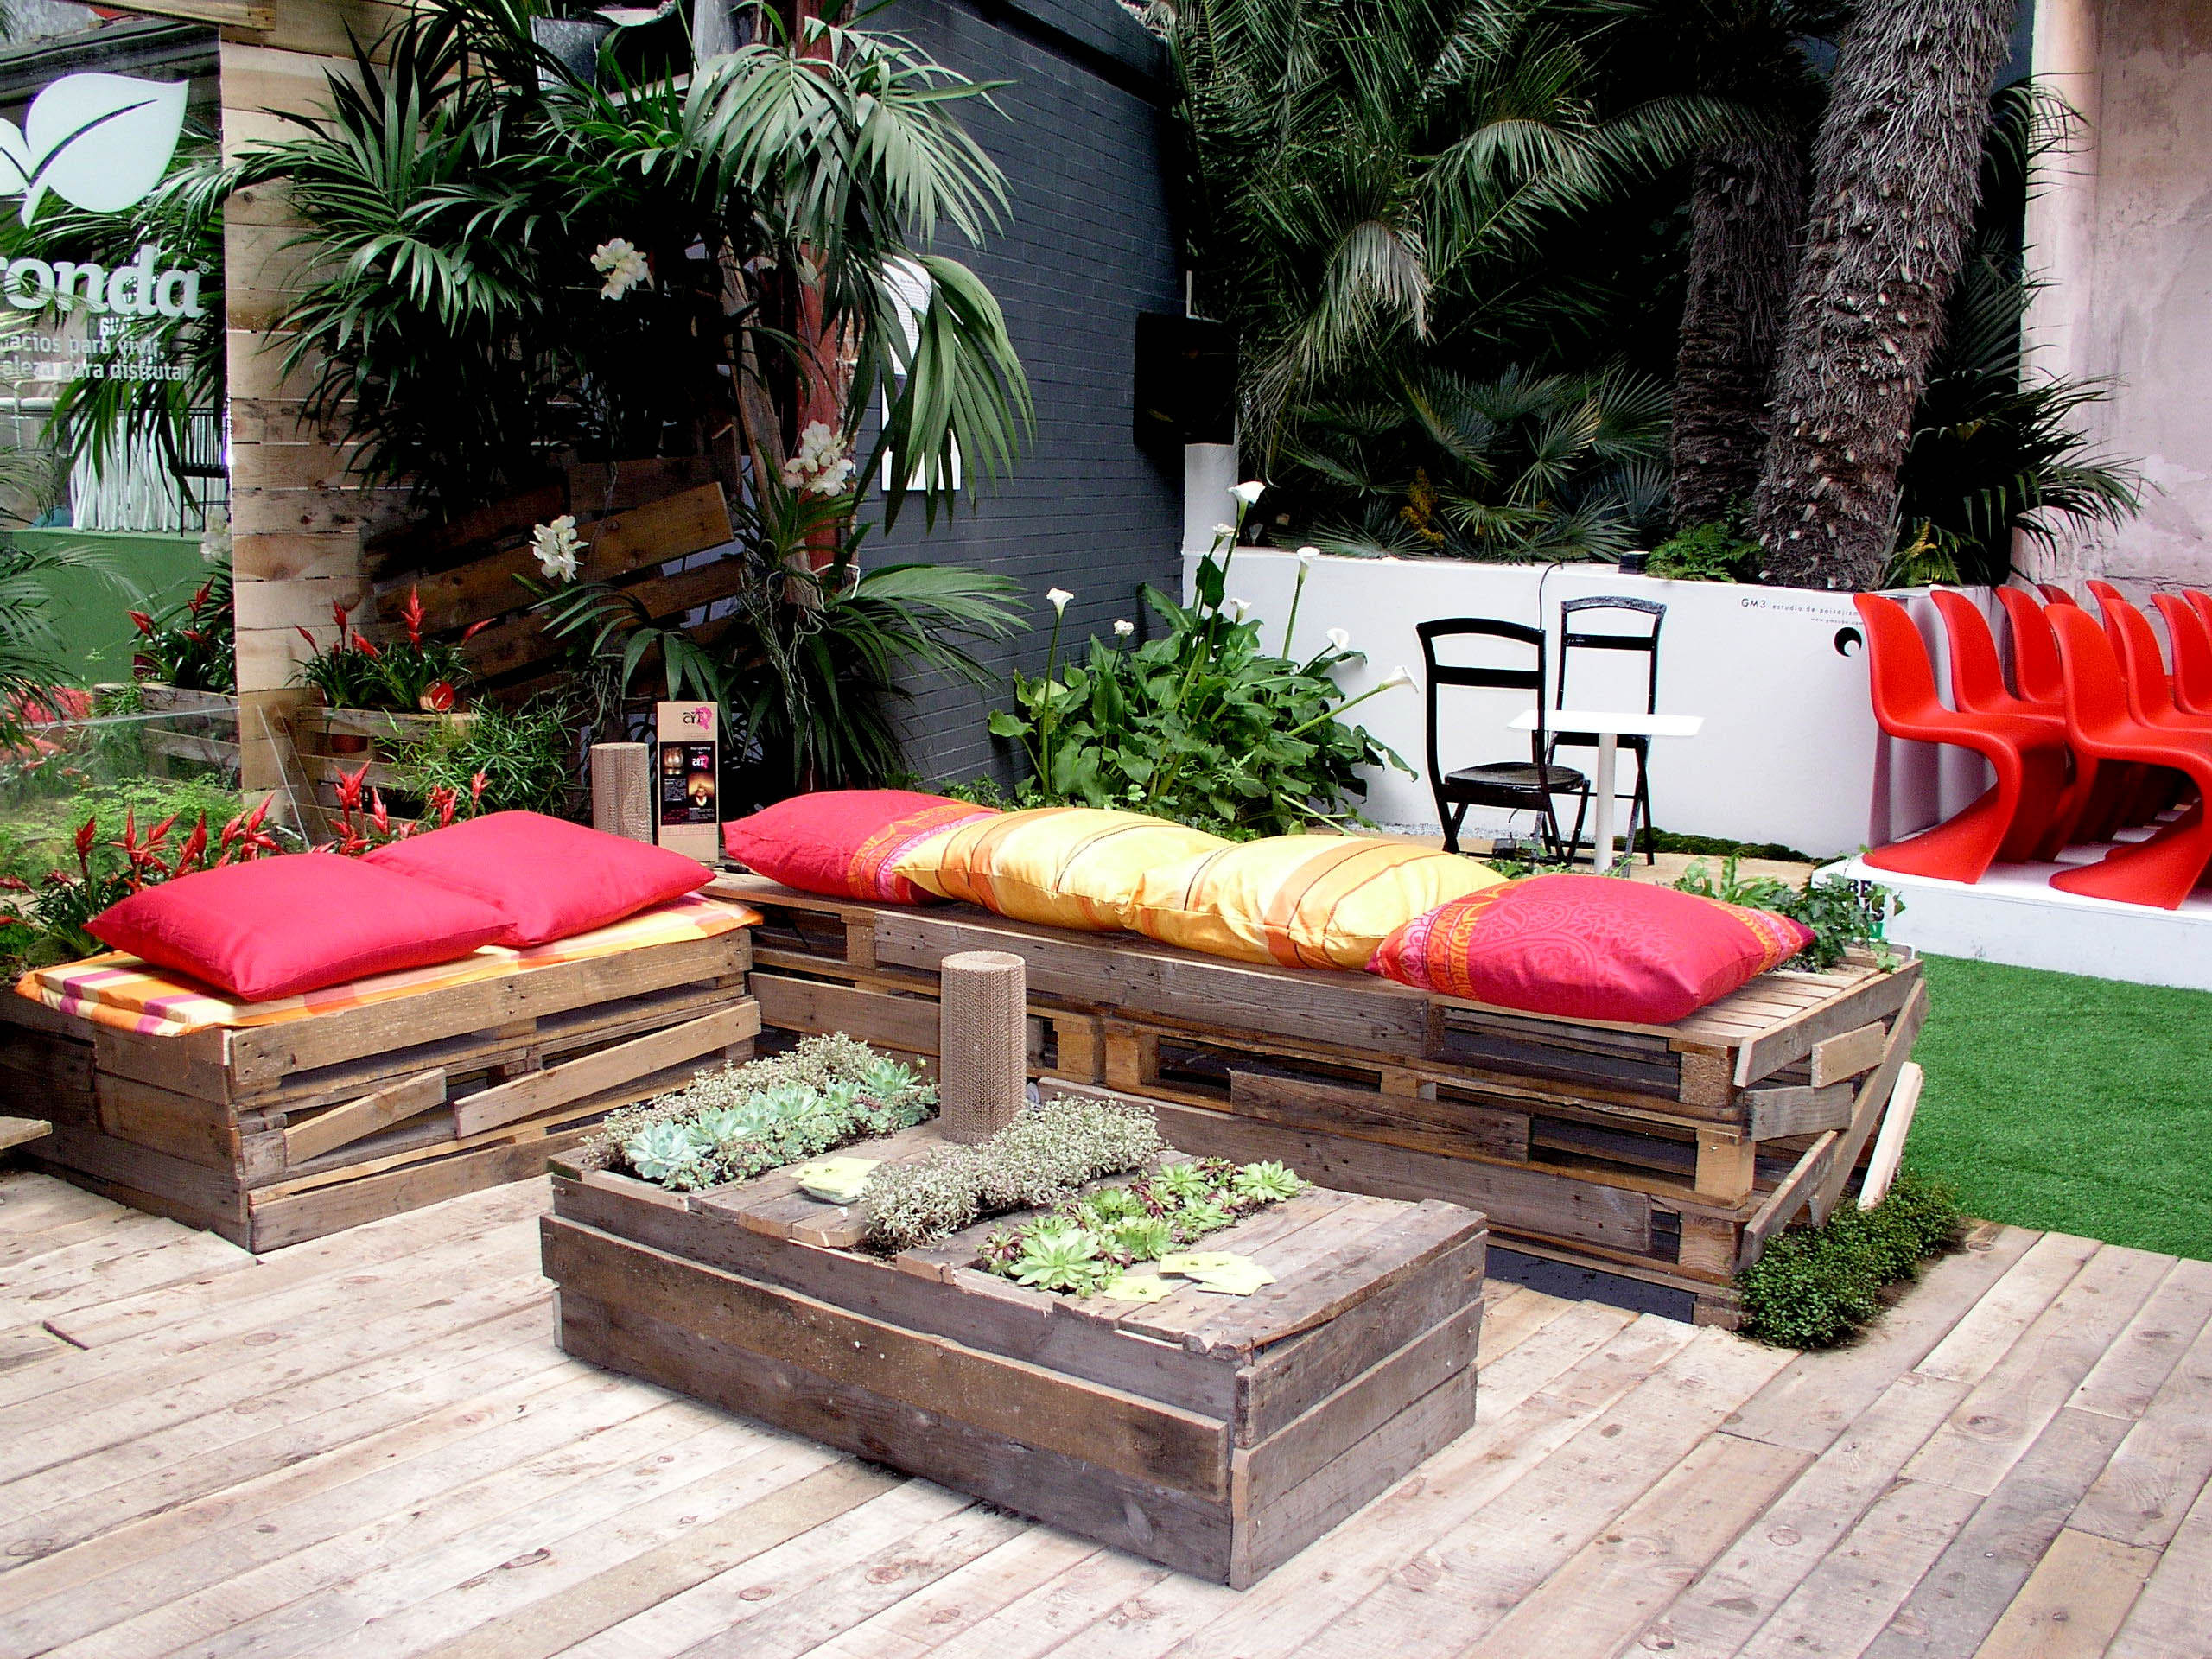 Gil stauffer blog gil stauffer blog grandes for Muebles con palets para terraza